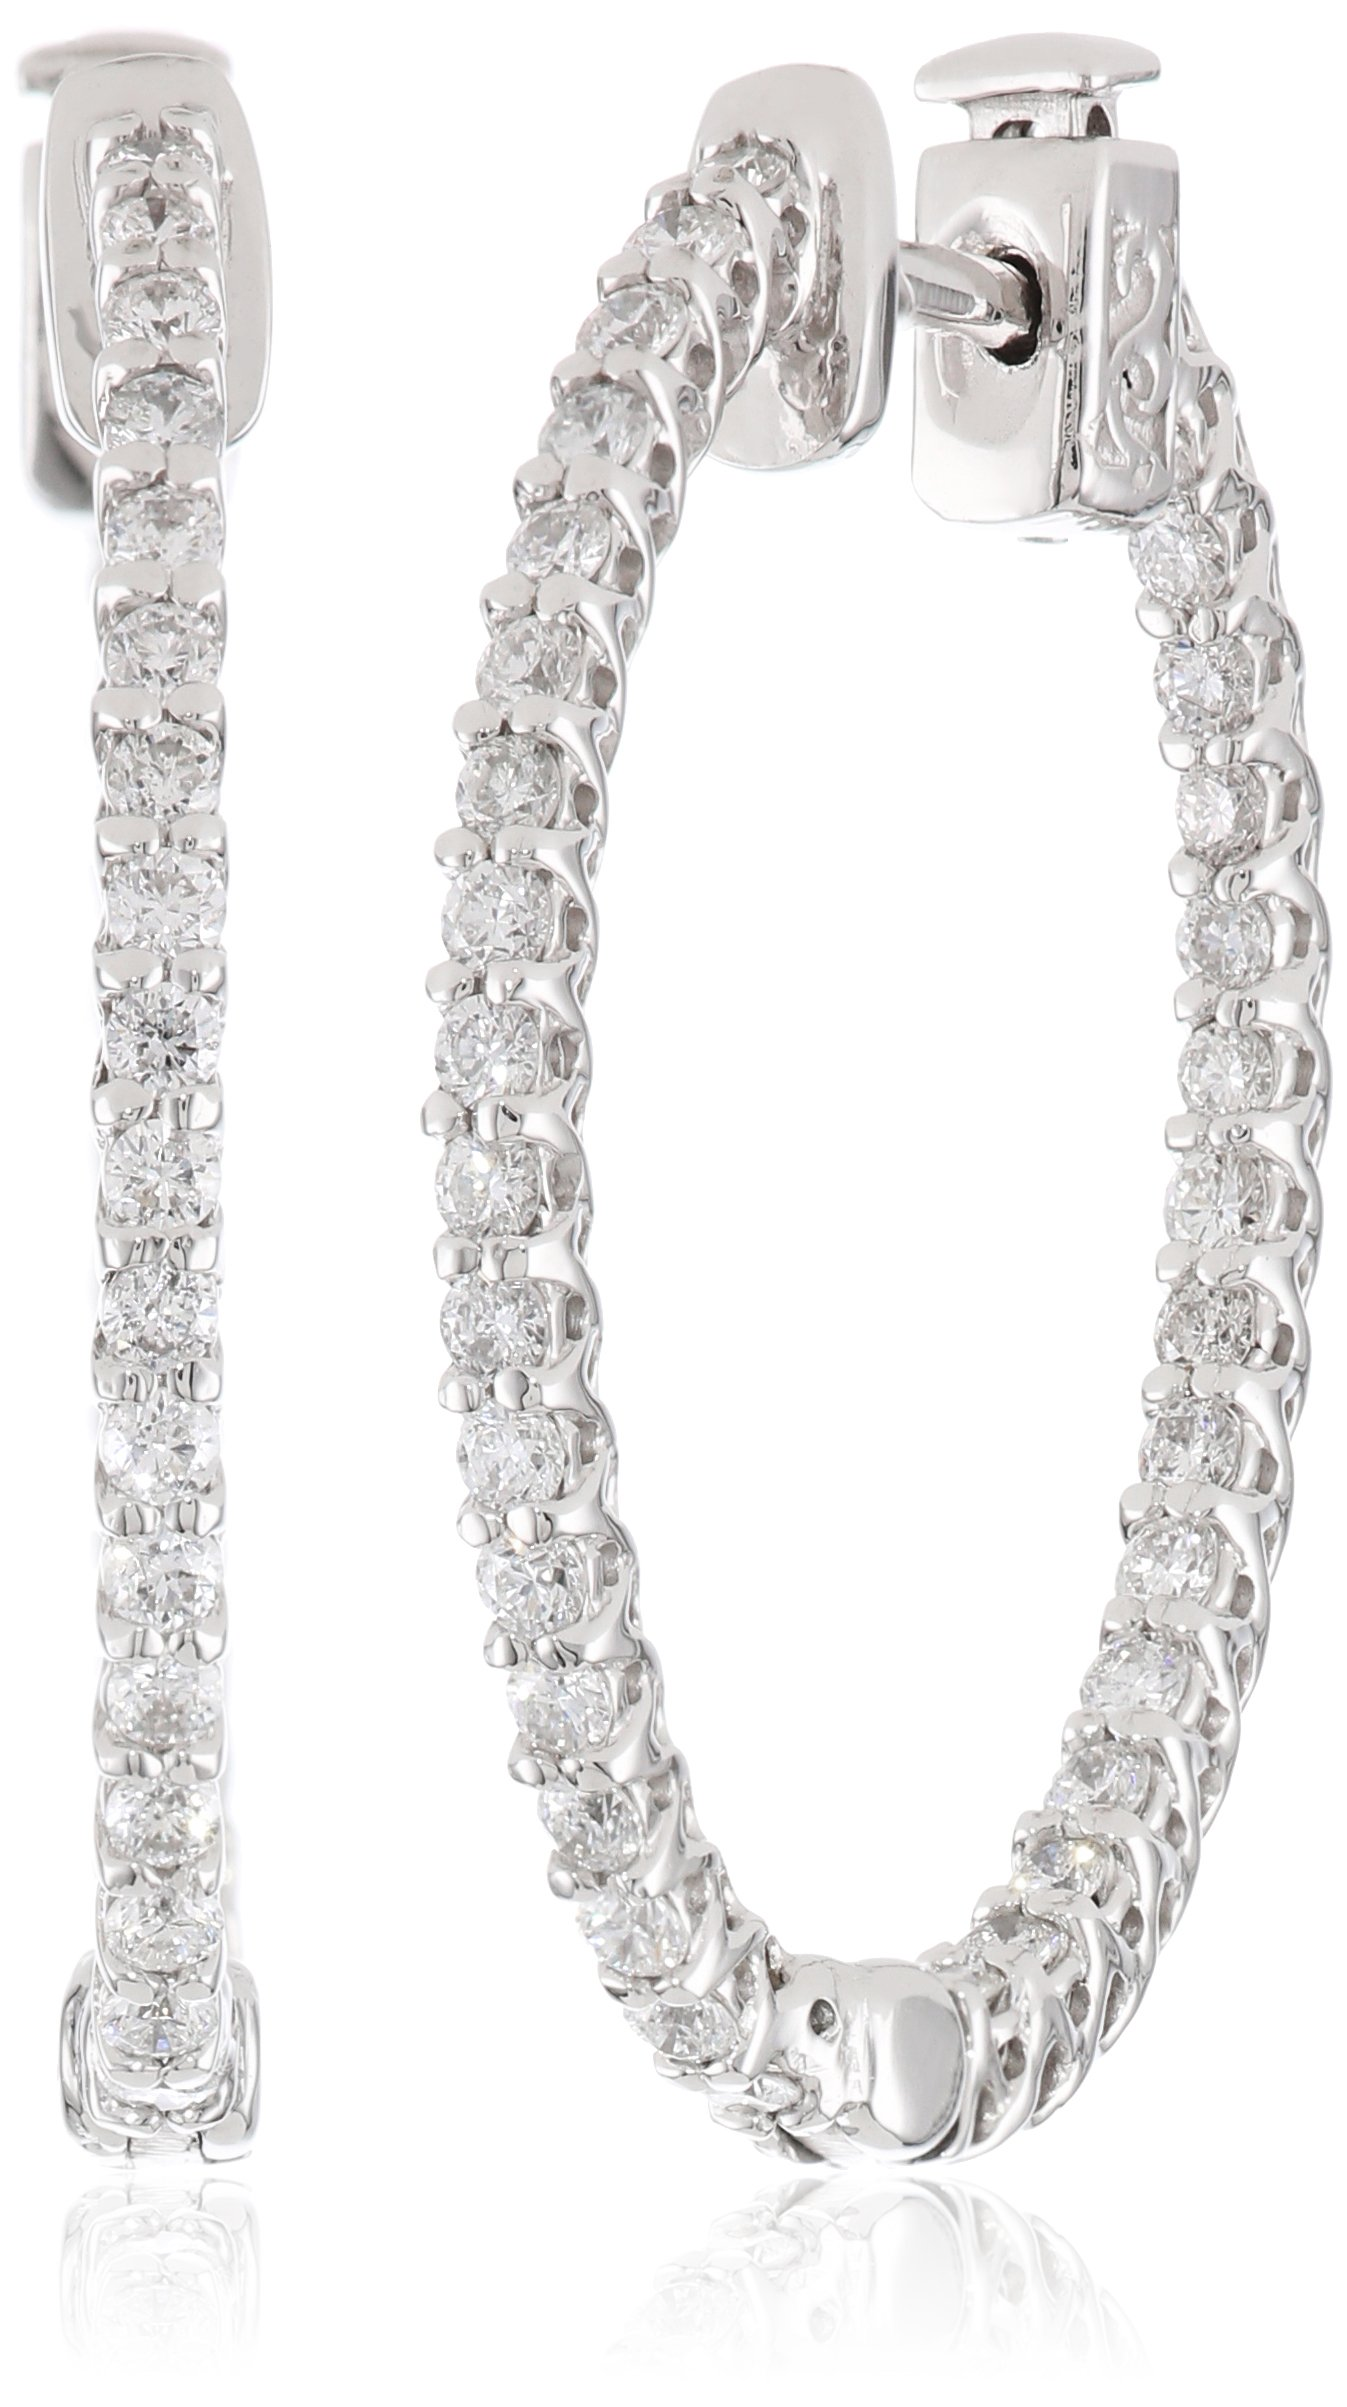 14kt White Gold Diamond Inside and Outside Lucida Set Oval Hoops, 1.1 cttw (H-I Color, I1 Clarity)